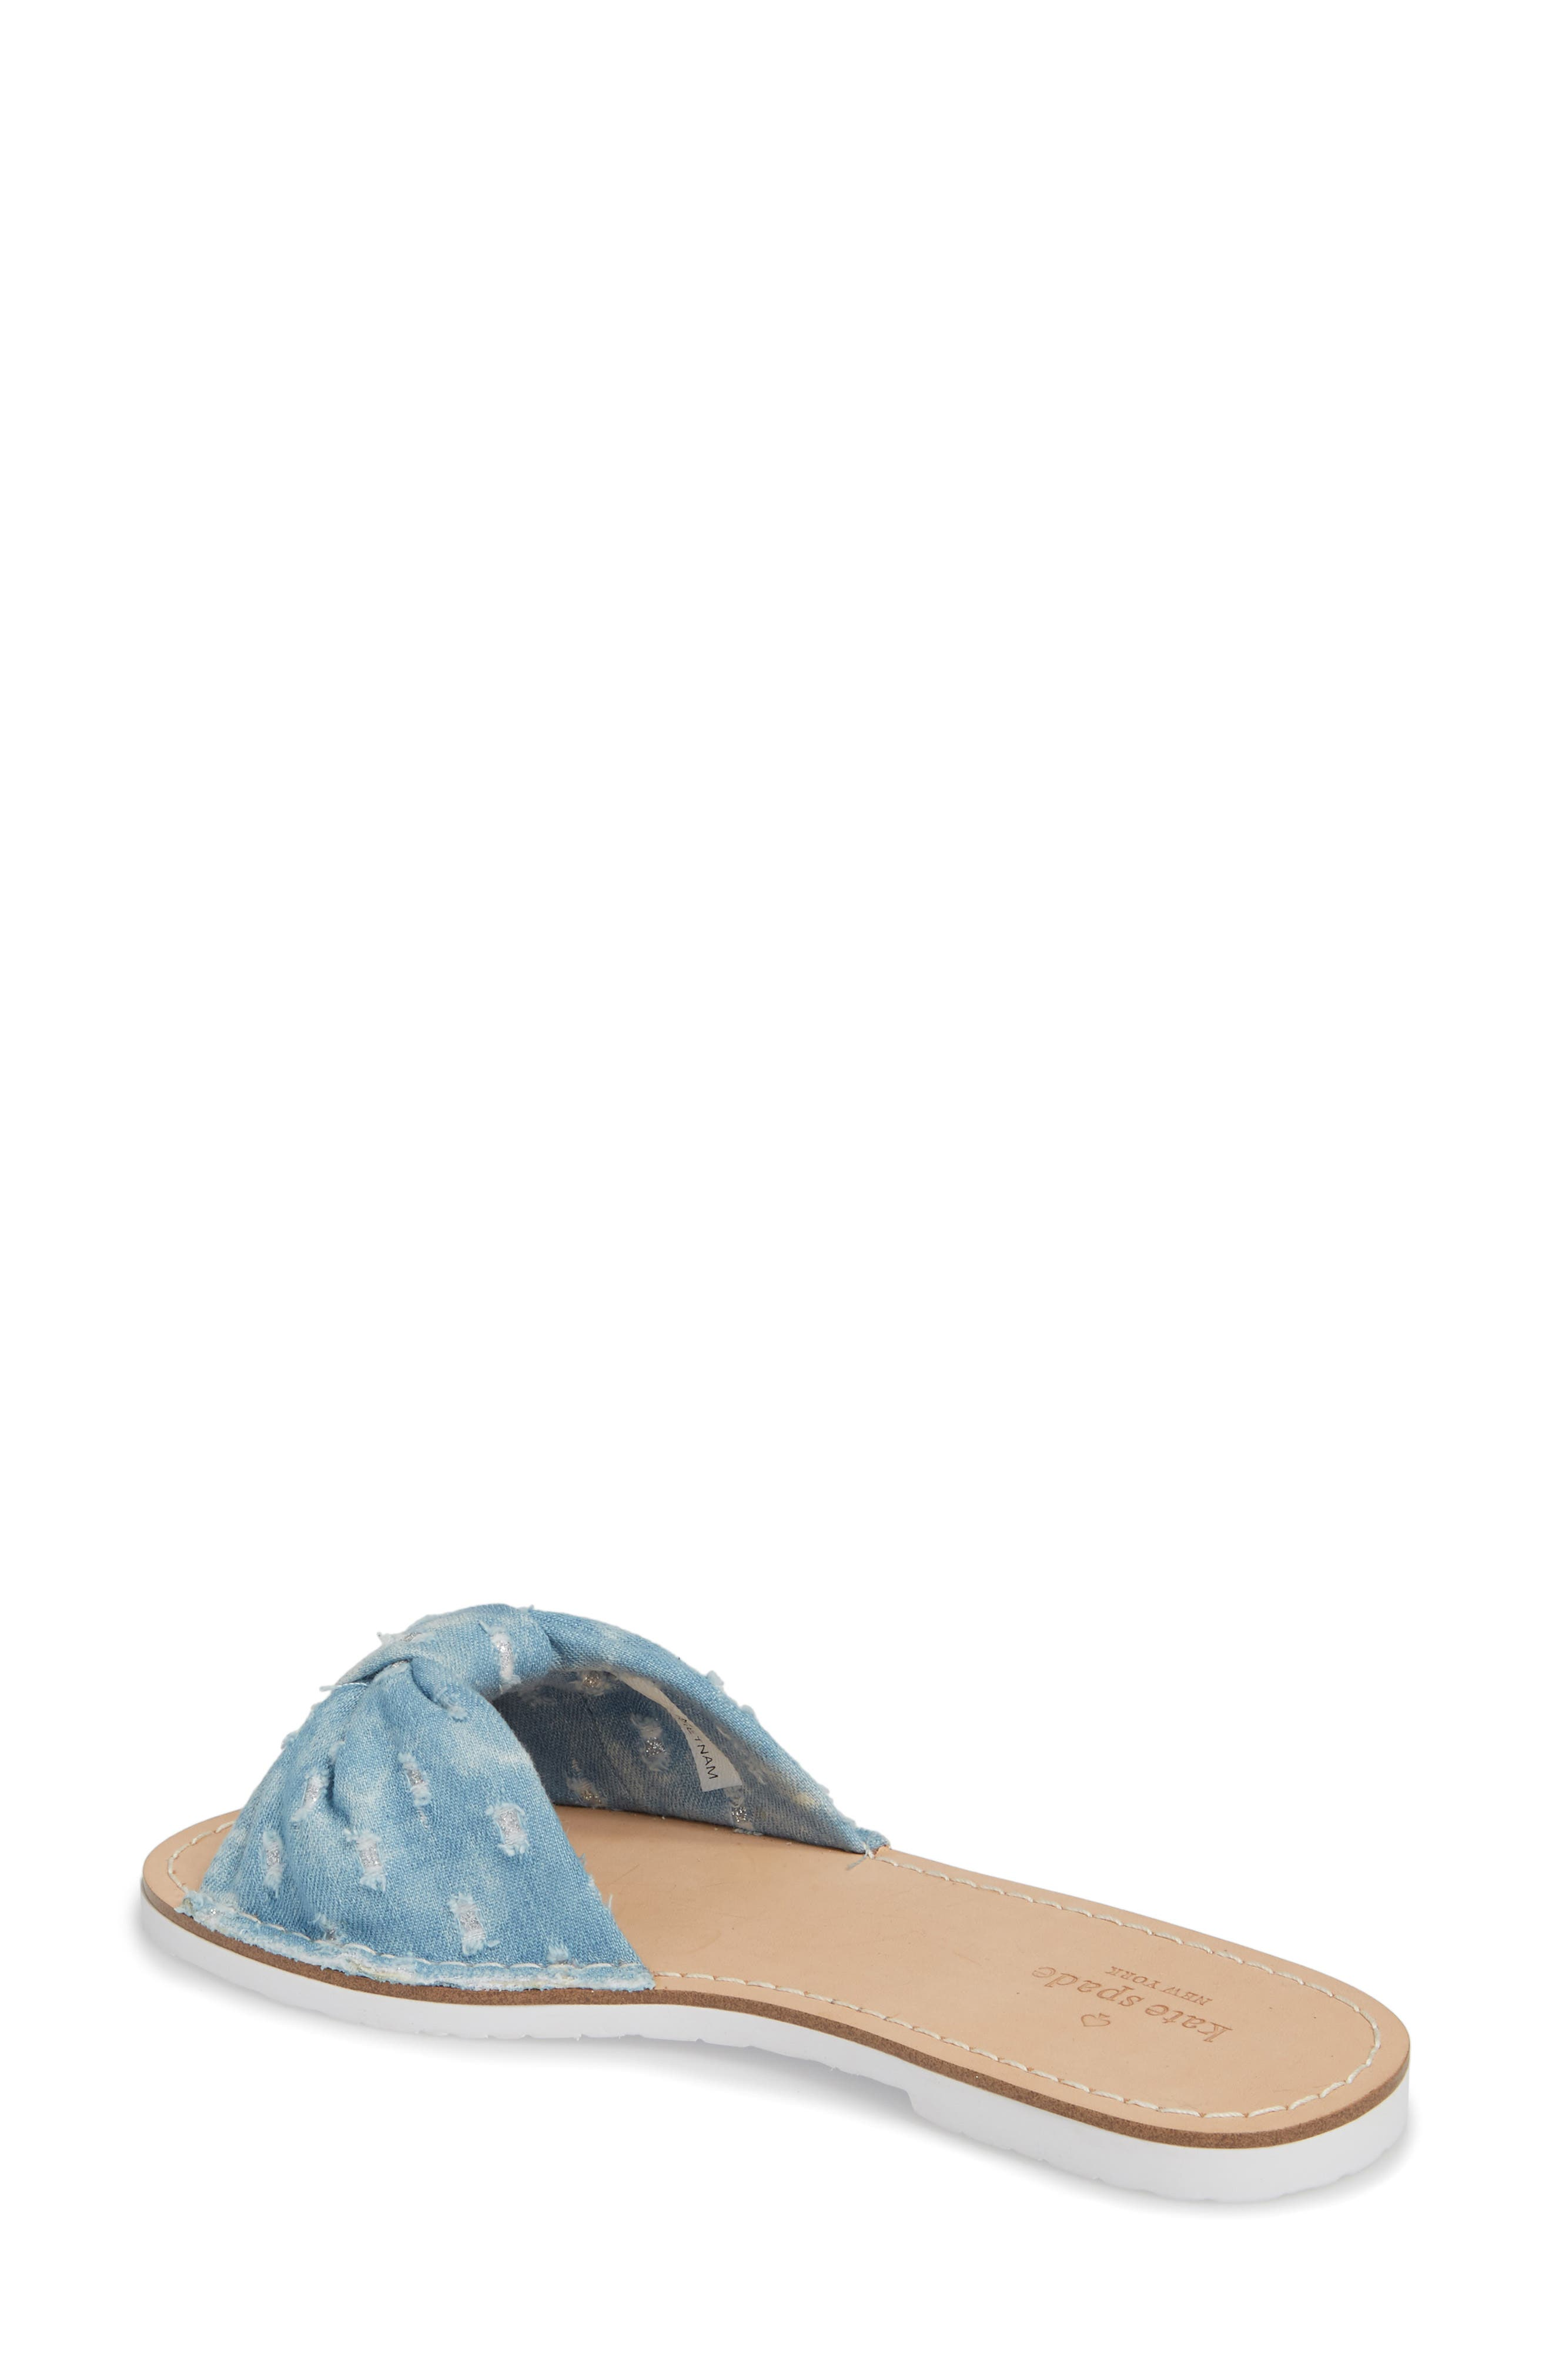 Alternate Image 2  - kate spade new york indi slide sandal (Women)